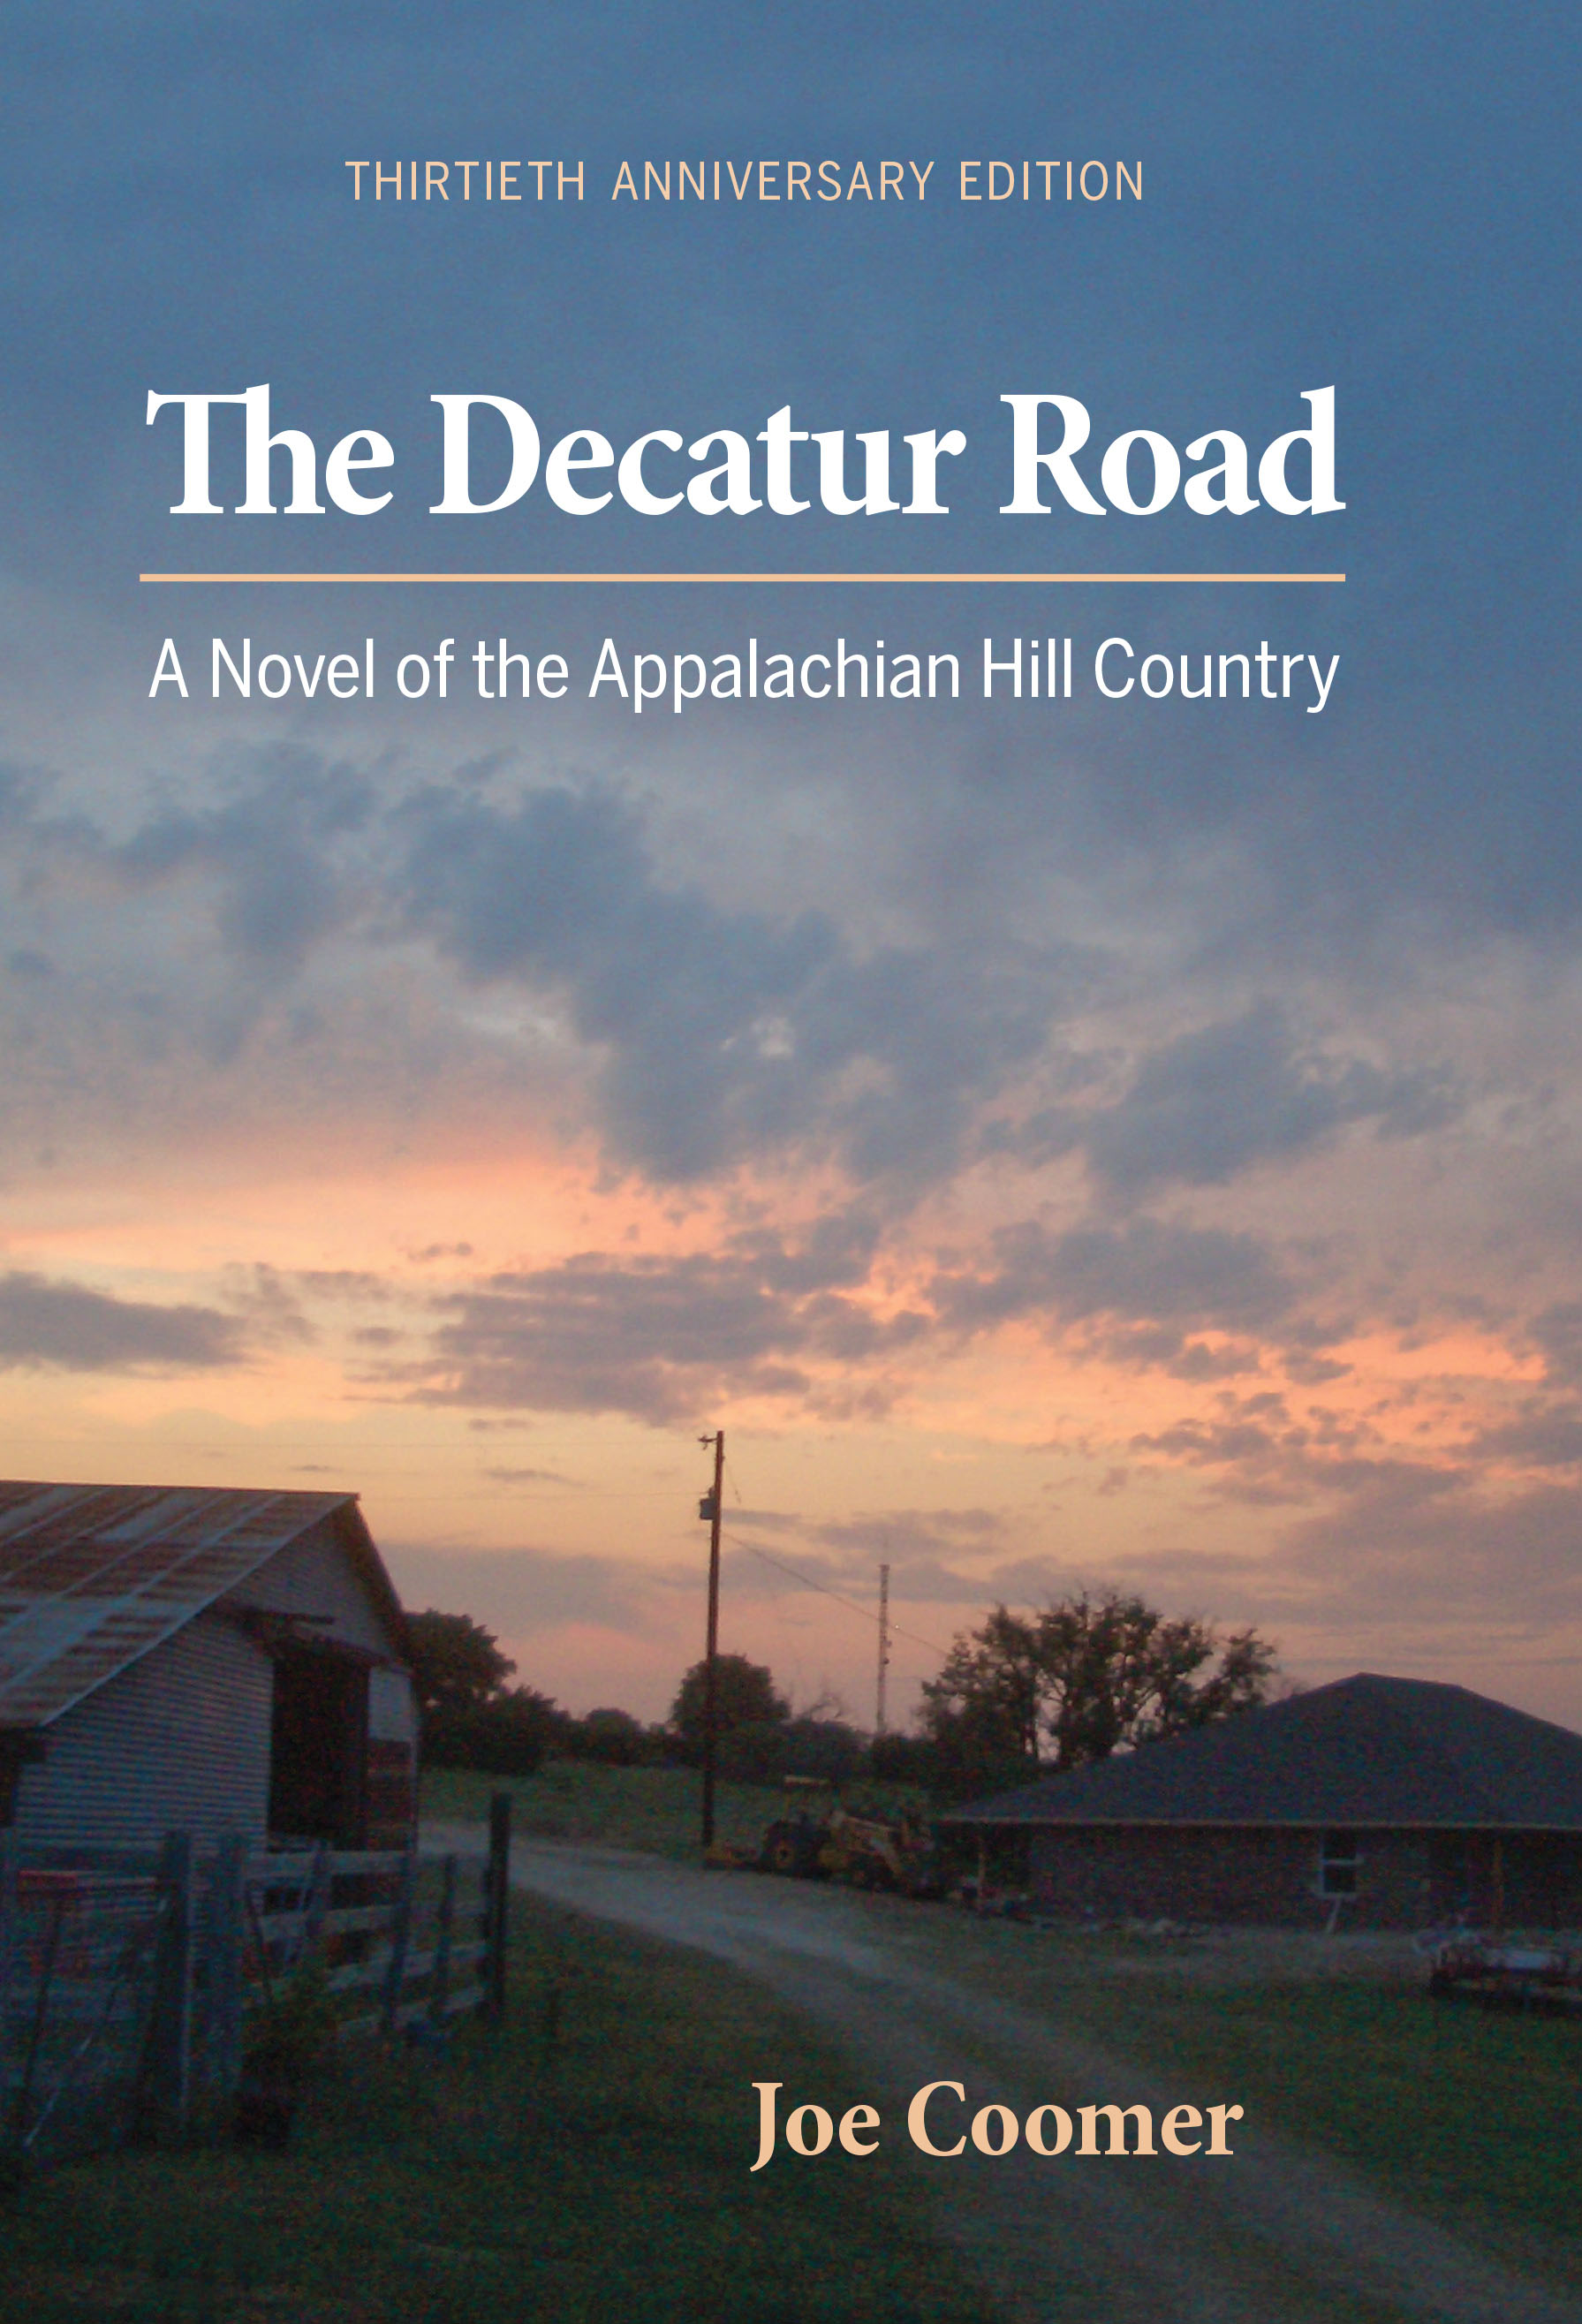 The Decatur Road: A Novel of the Appalachian Hill Country by Joe Coomer